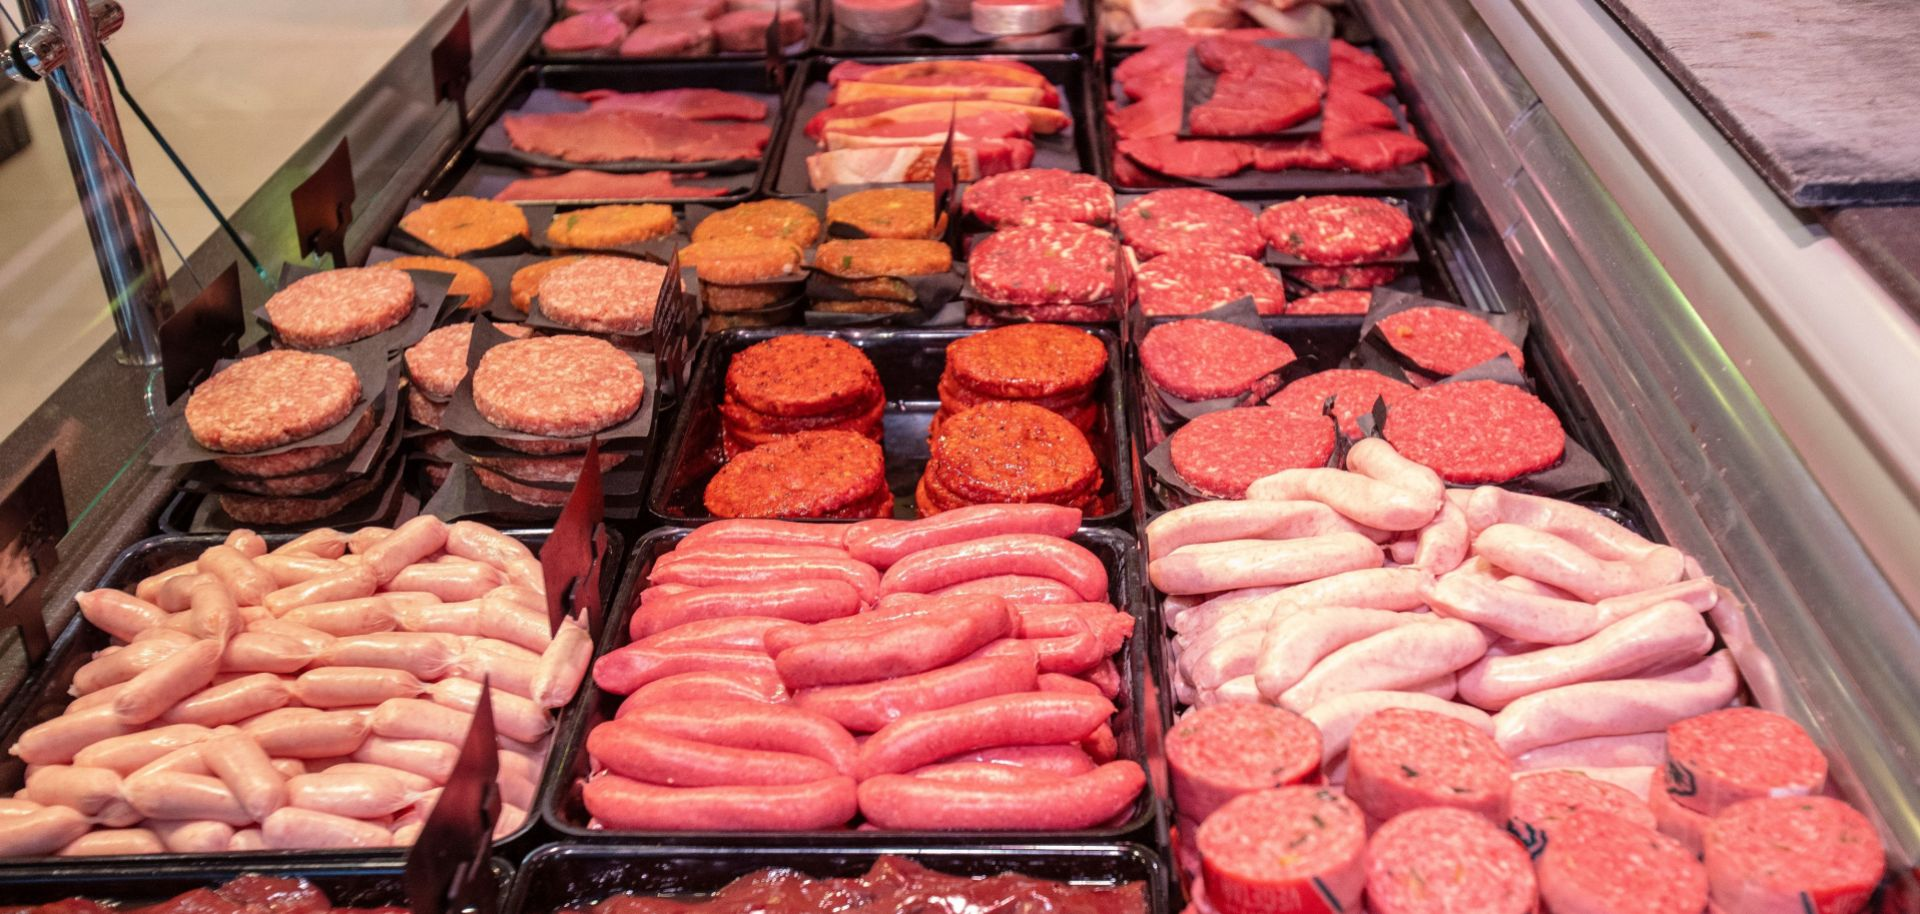 Pork sausages and beef burger patties are seen at a butcher's shop in Ballymena, Northern Ireland, on Dec. 10, 2020.